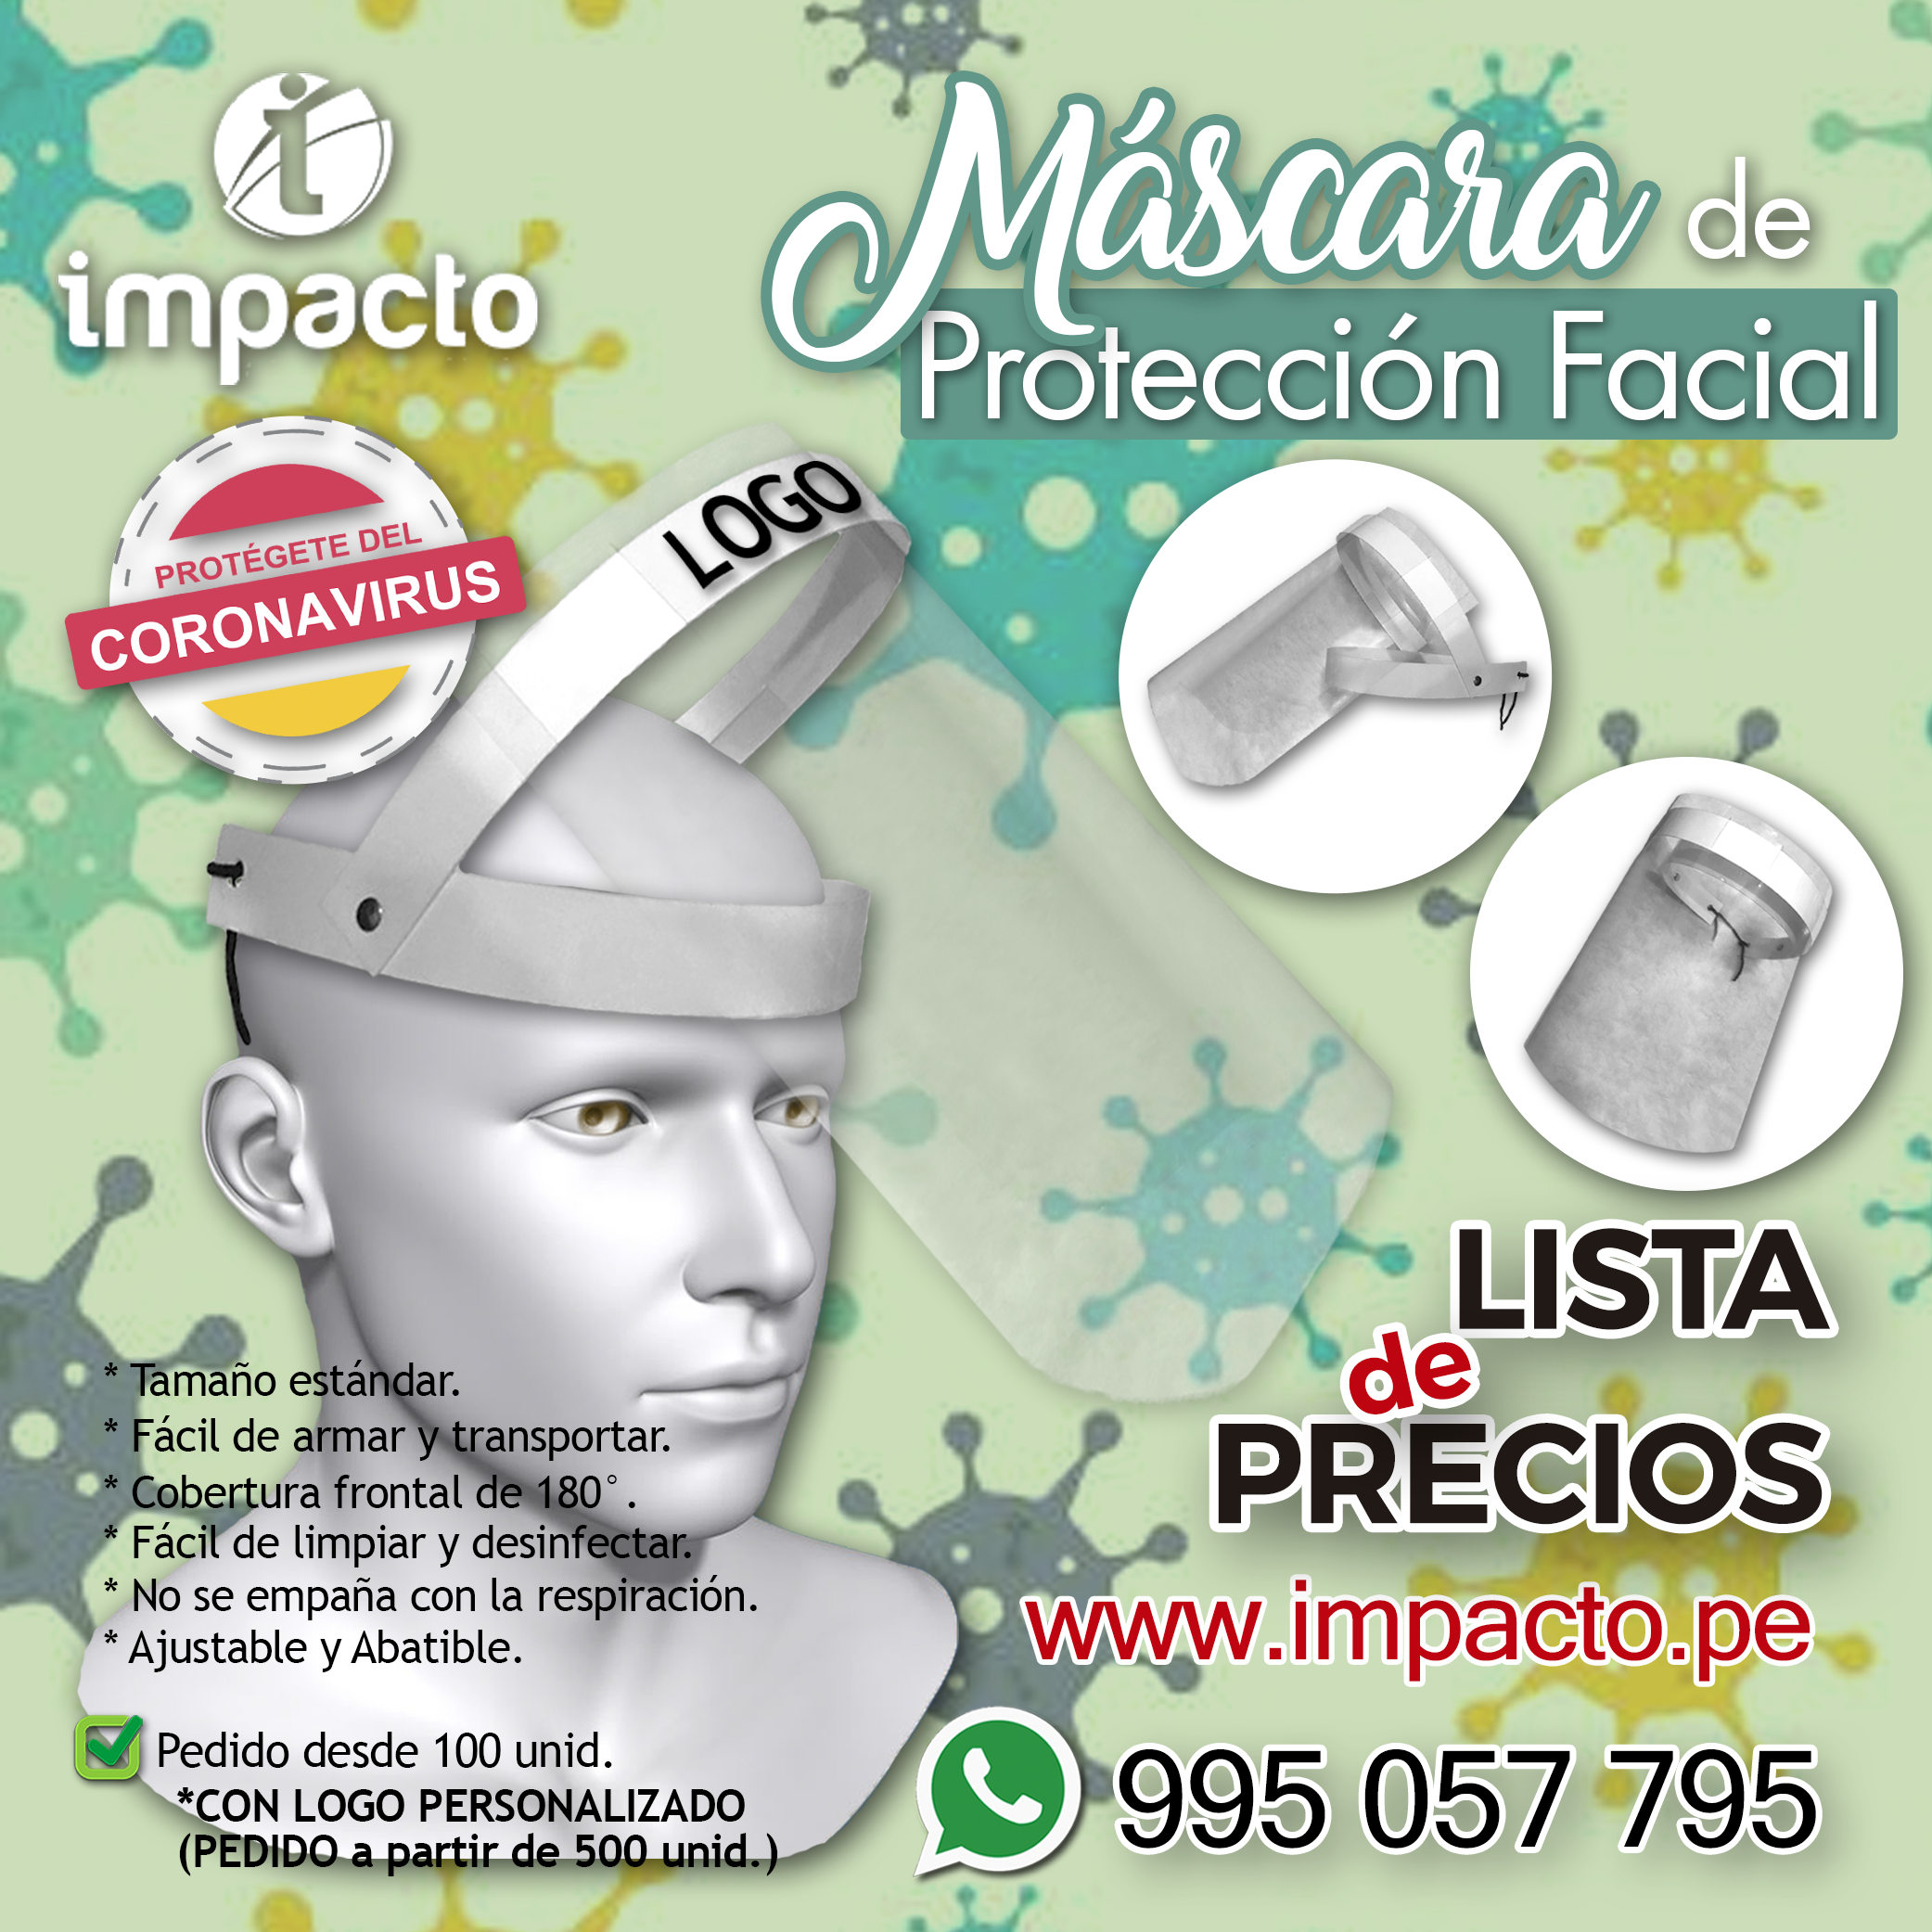 Mascara de proteccion facial